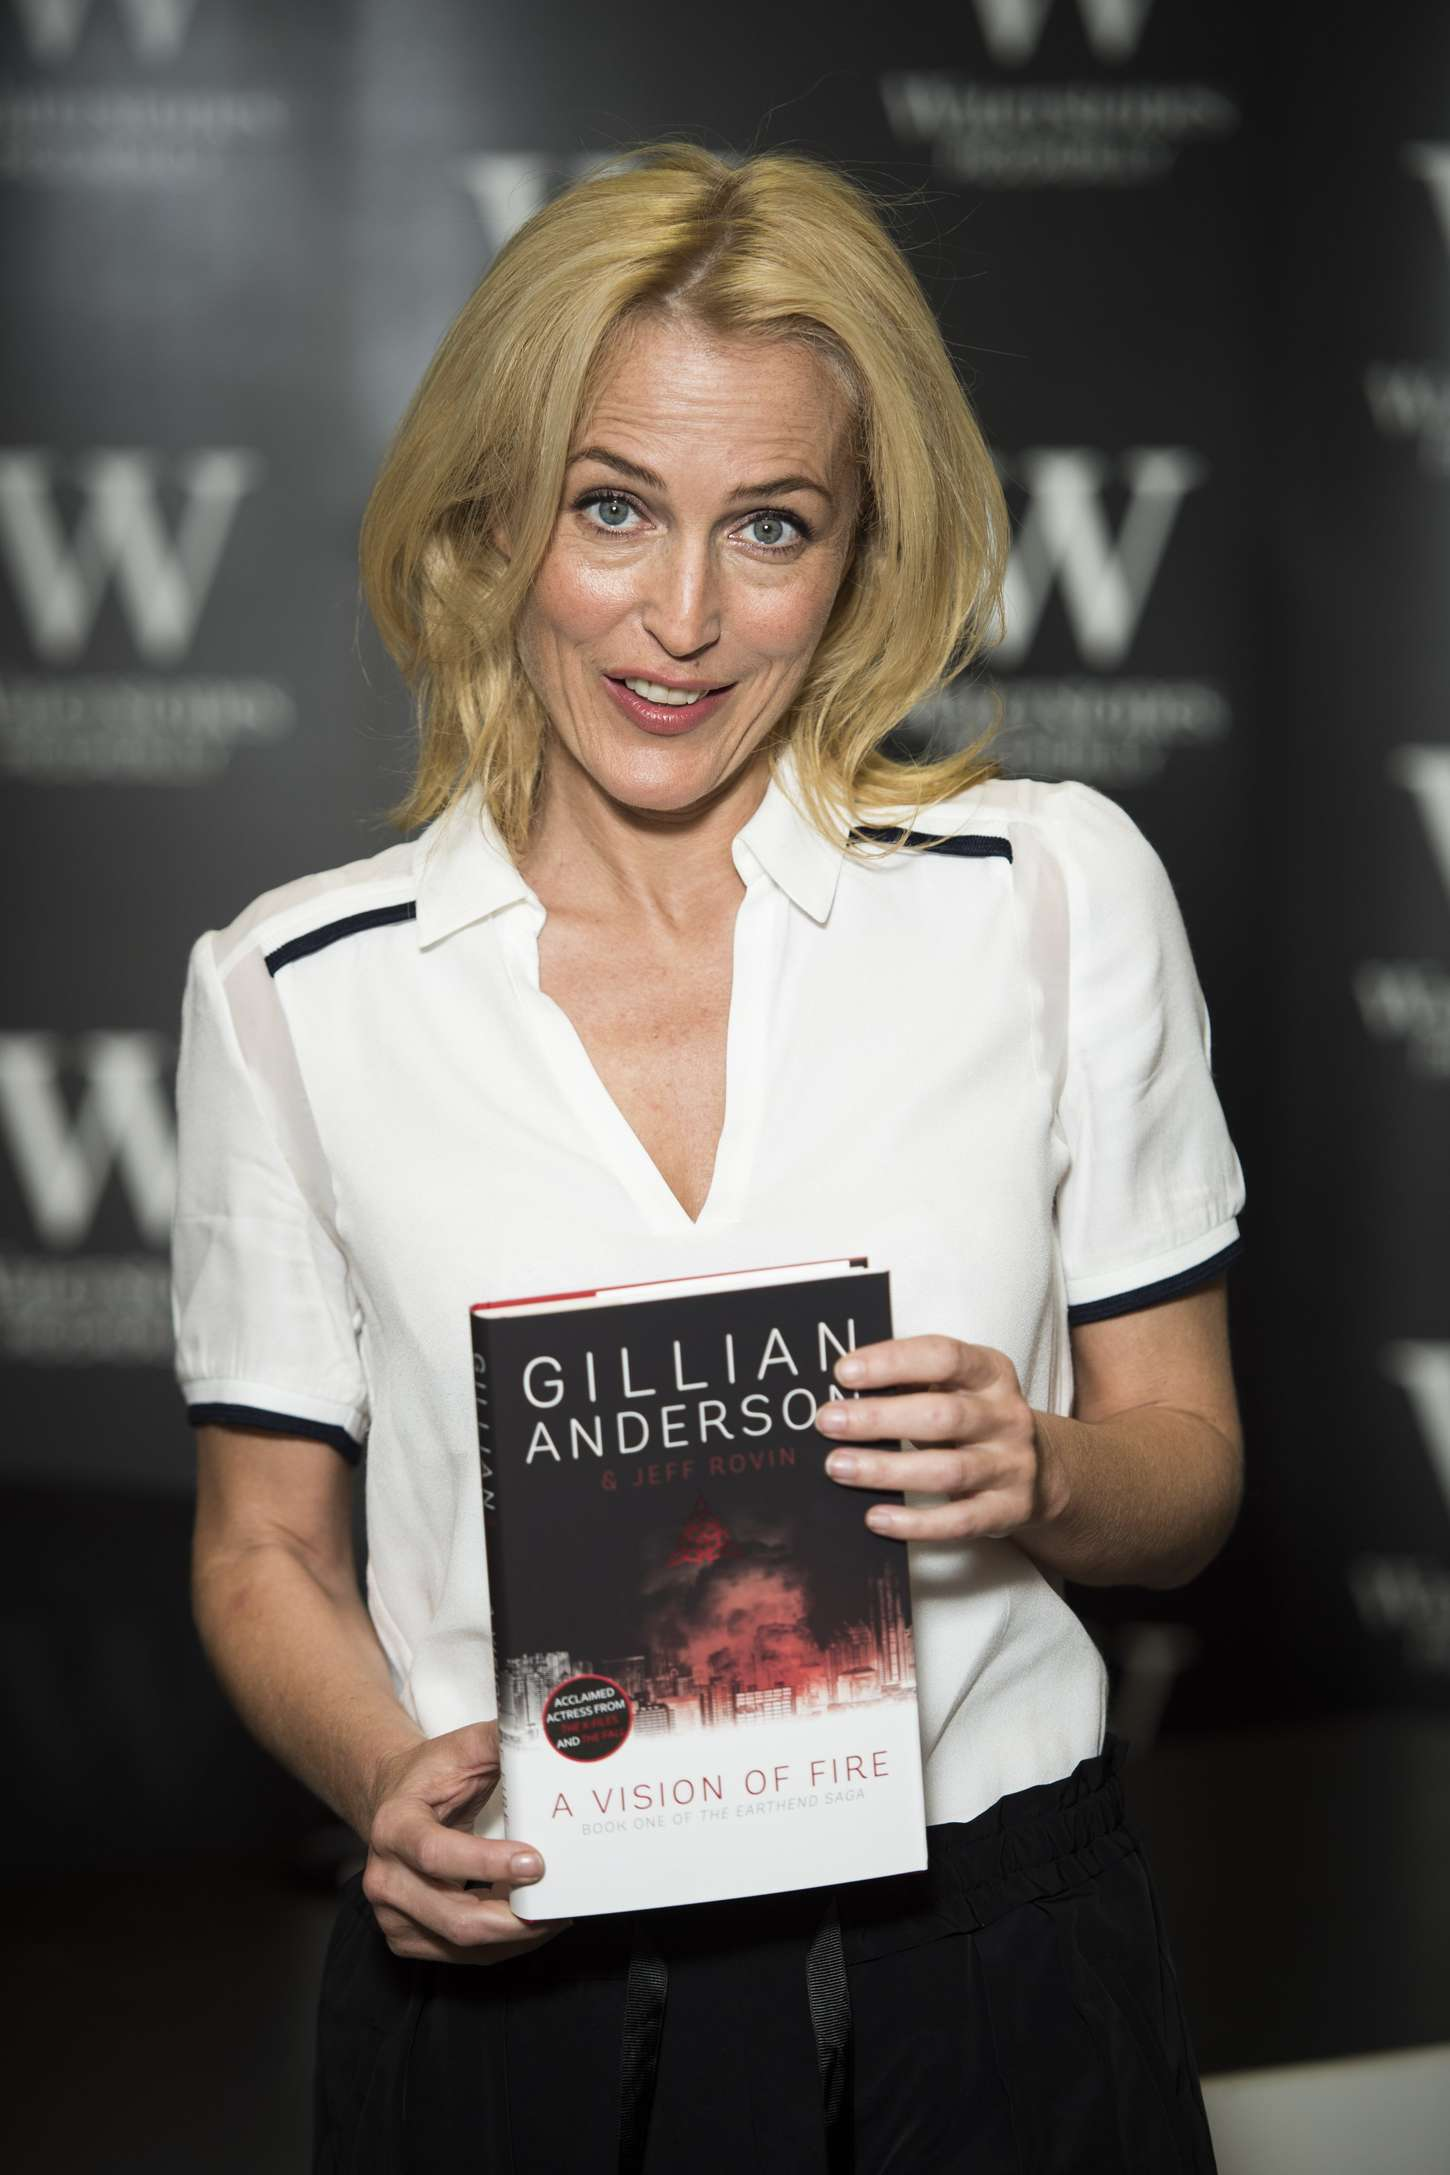 Gillian Anderson 2014 : Gillian Anderson: A Vision of Fire Book Signing -02